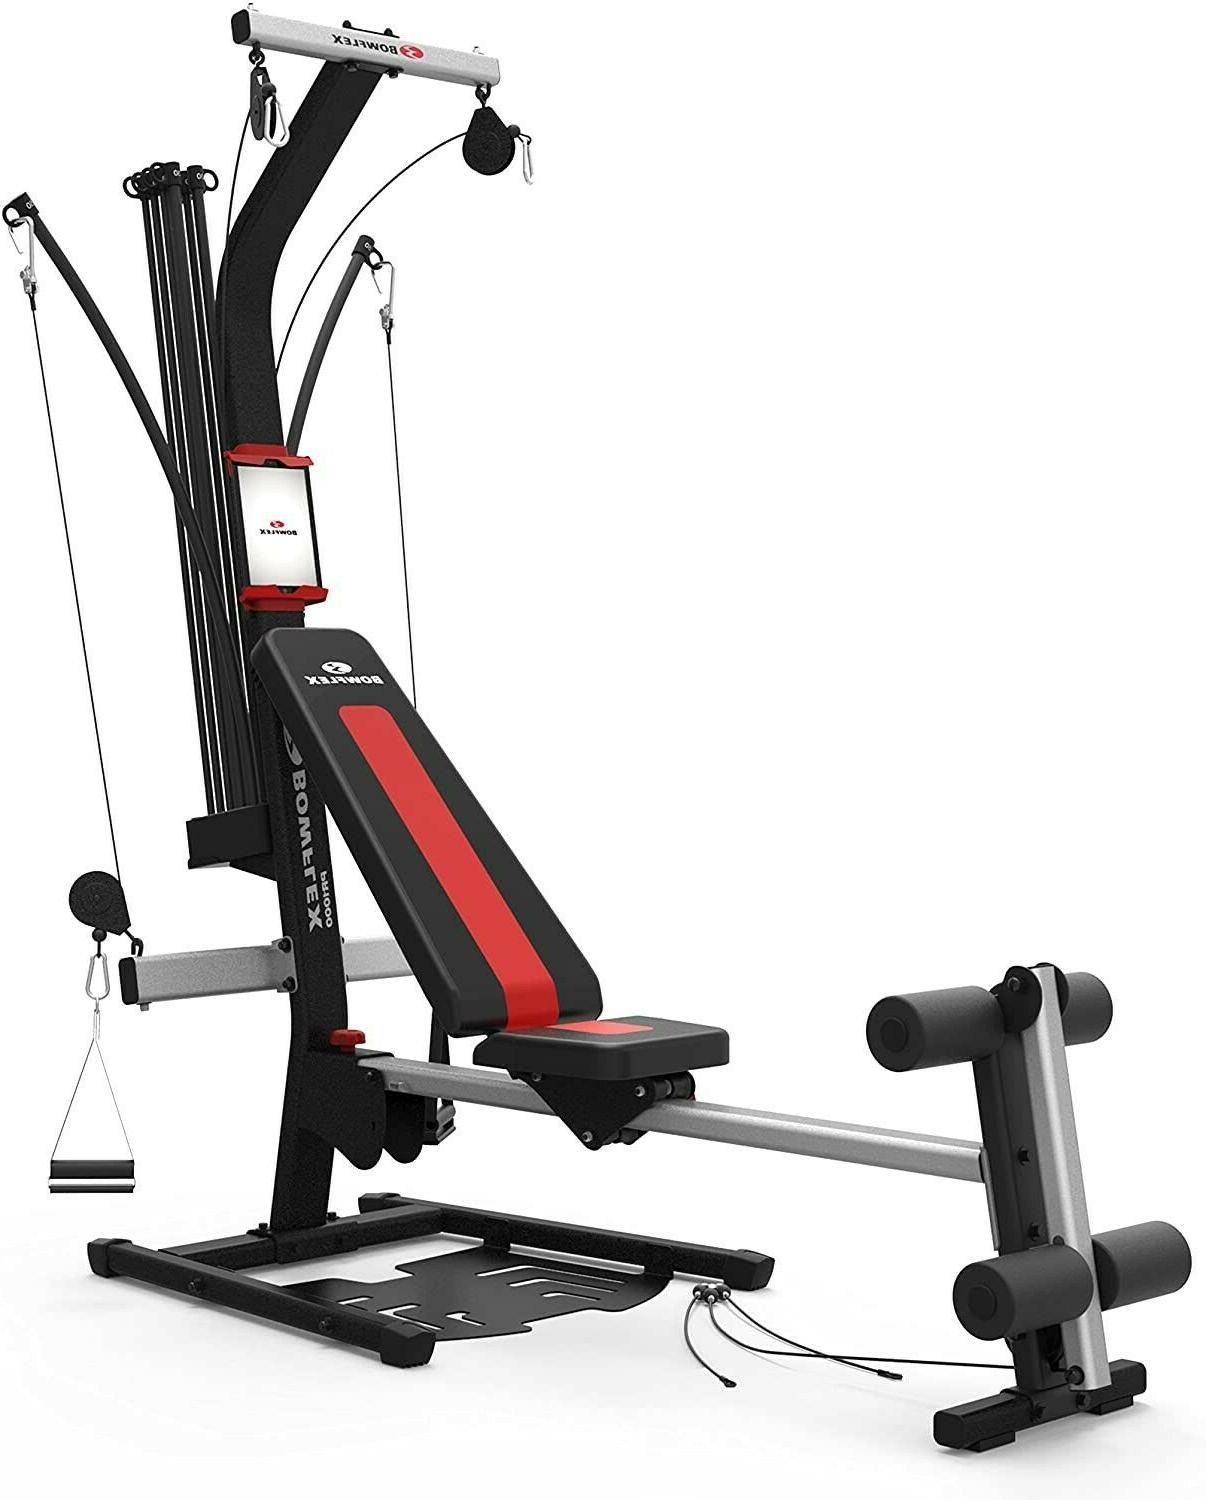 🔥 BRAND NEW🔥Bowflex PR1000 Home Gym - Workout Machine.